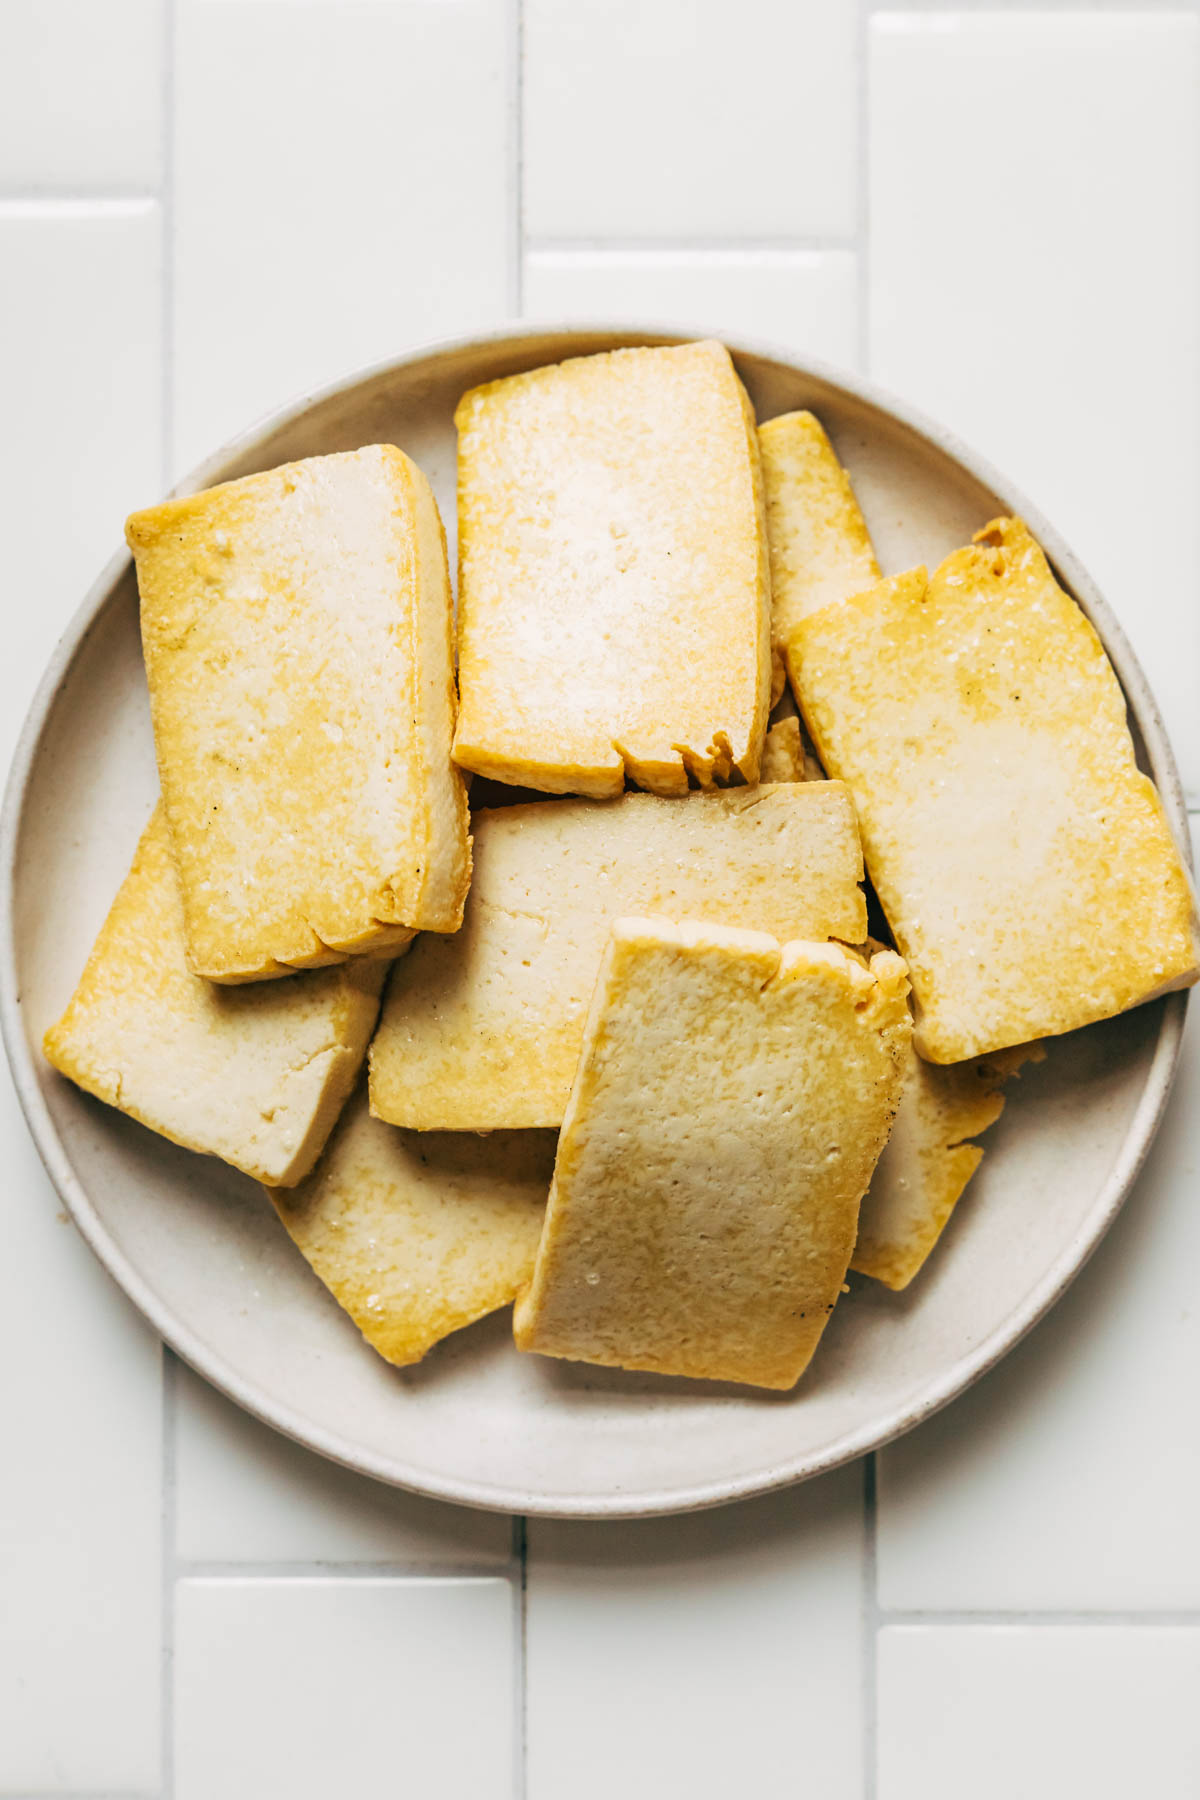 Slices of glofen fried tofu on a plate, ready to be turned into teriyaki.